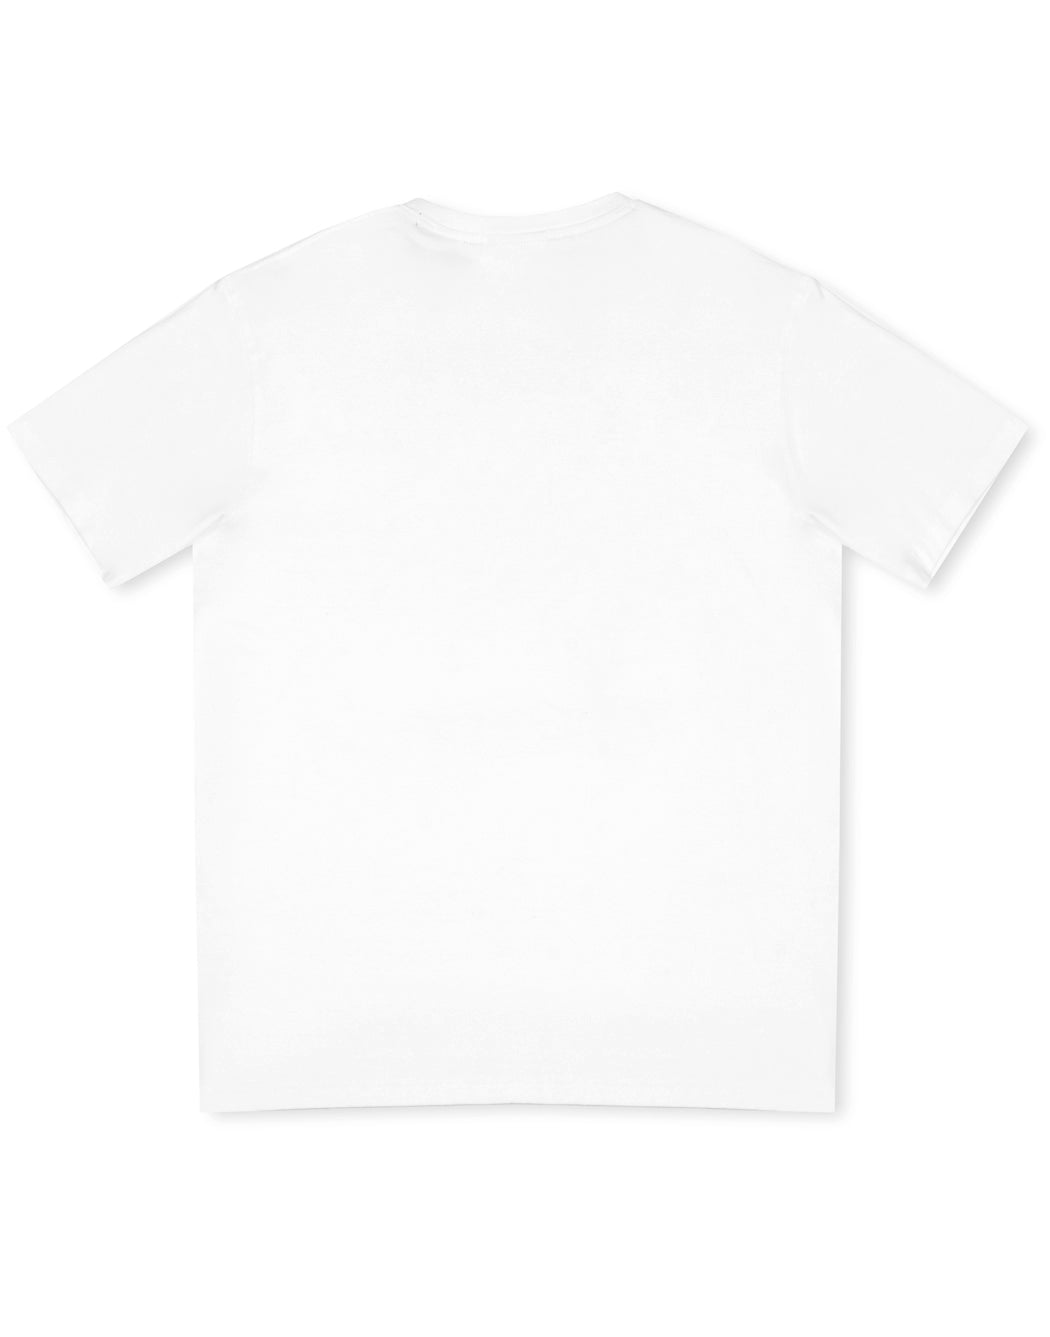 Money Clothing t-shirt in white